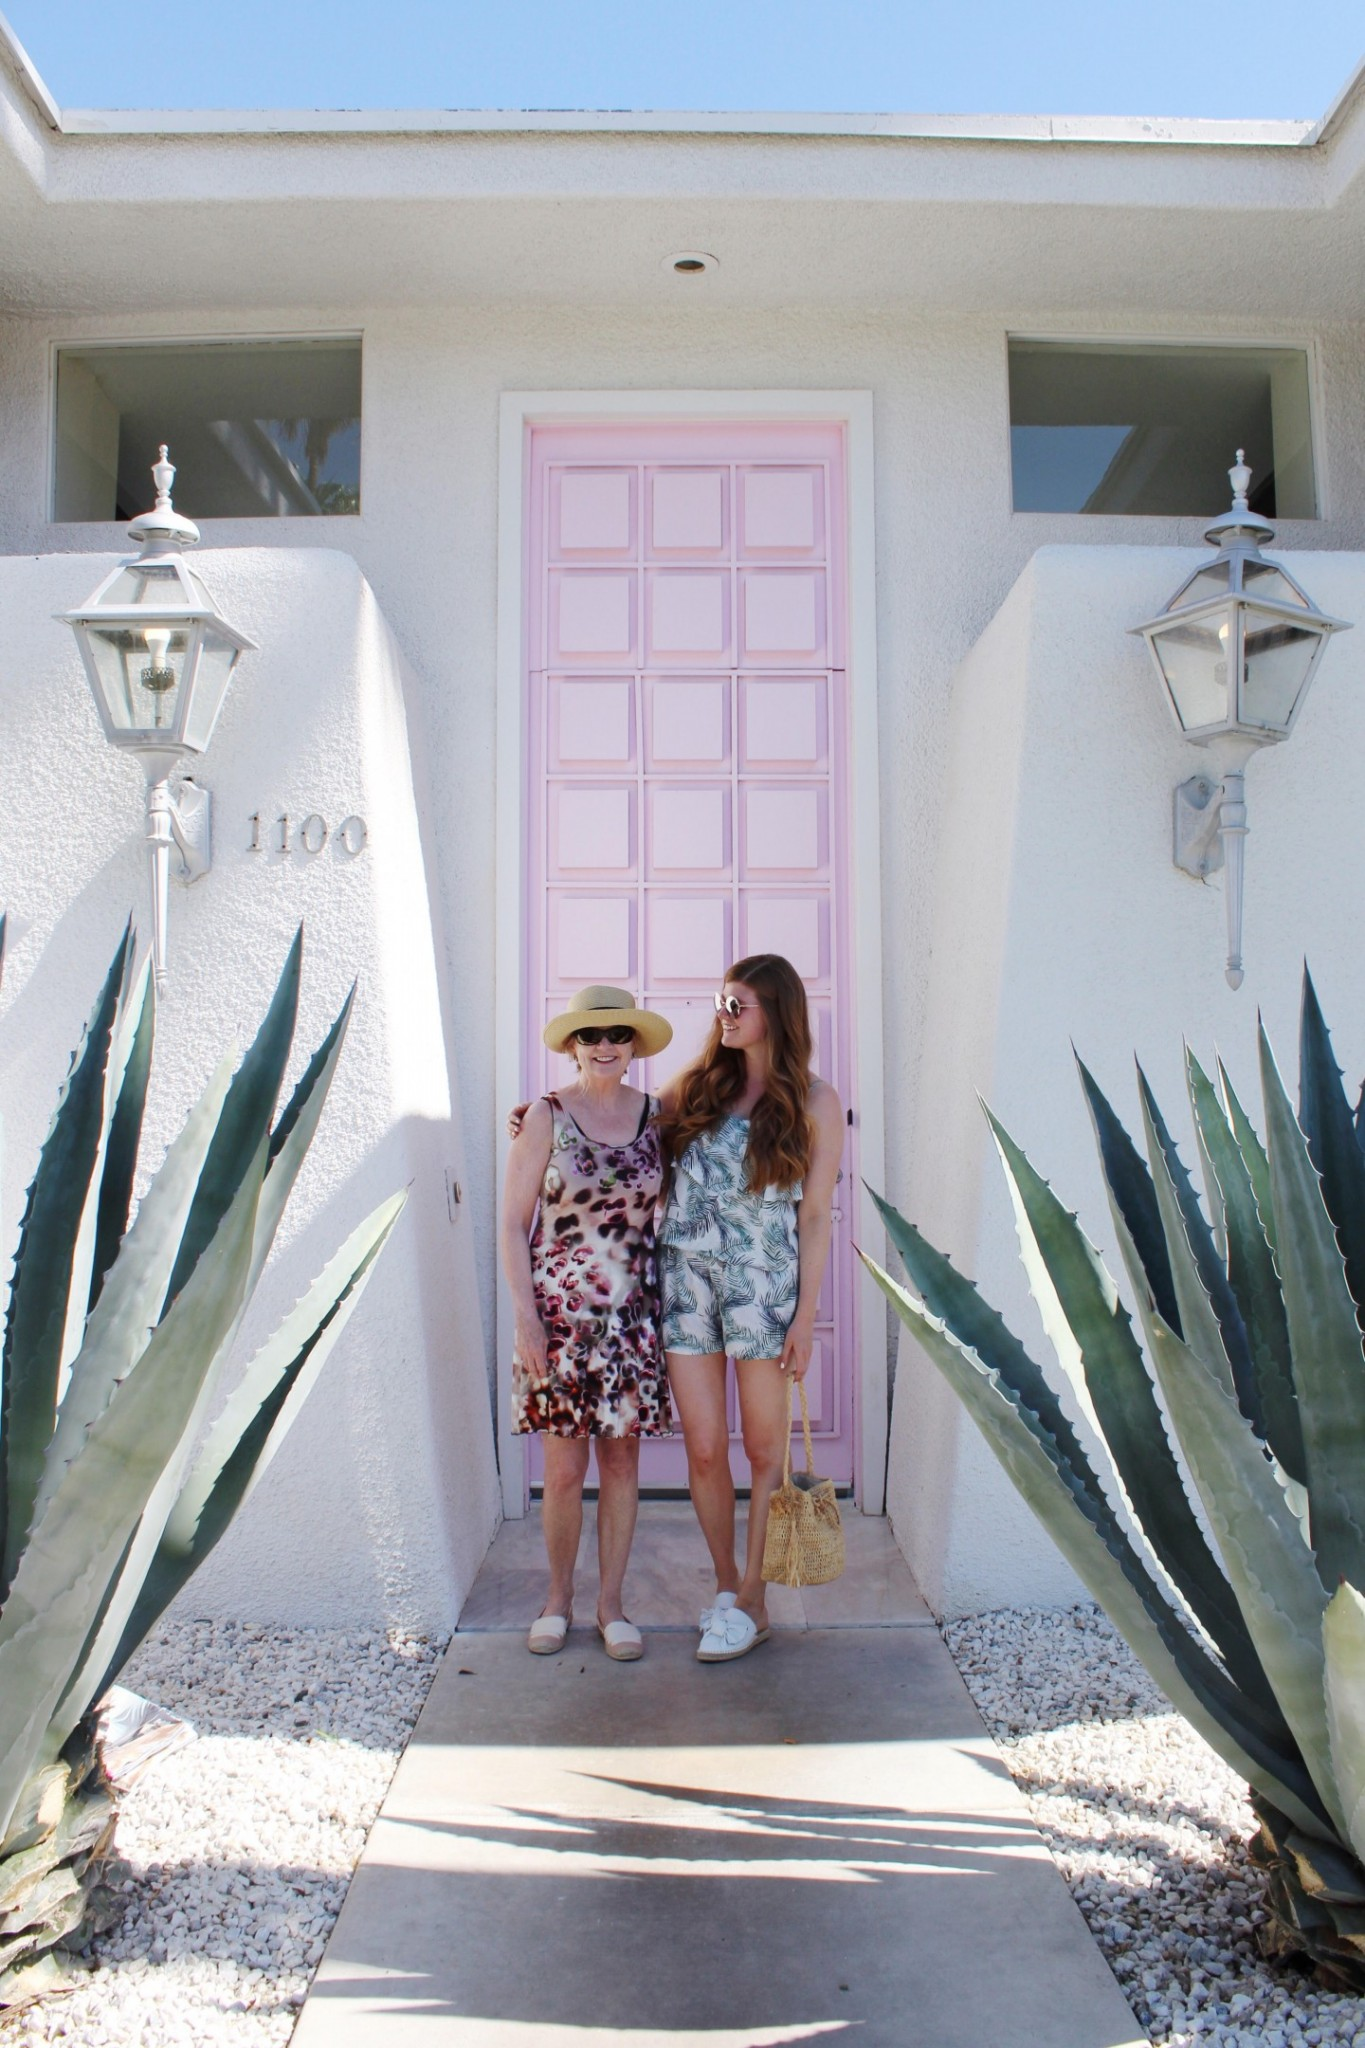 Lifestyle blogger Mollie Sheperdson visits #ThatPinkDoor in Palm Springs